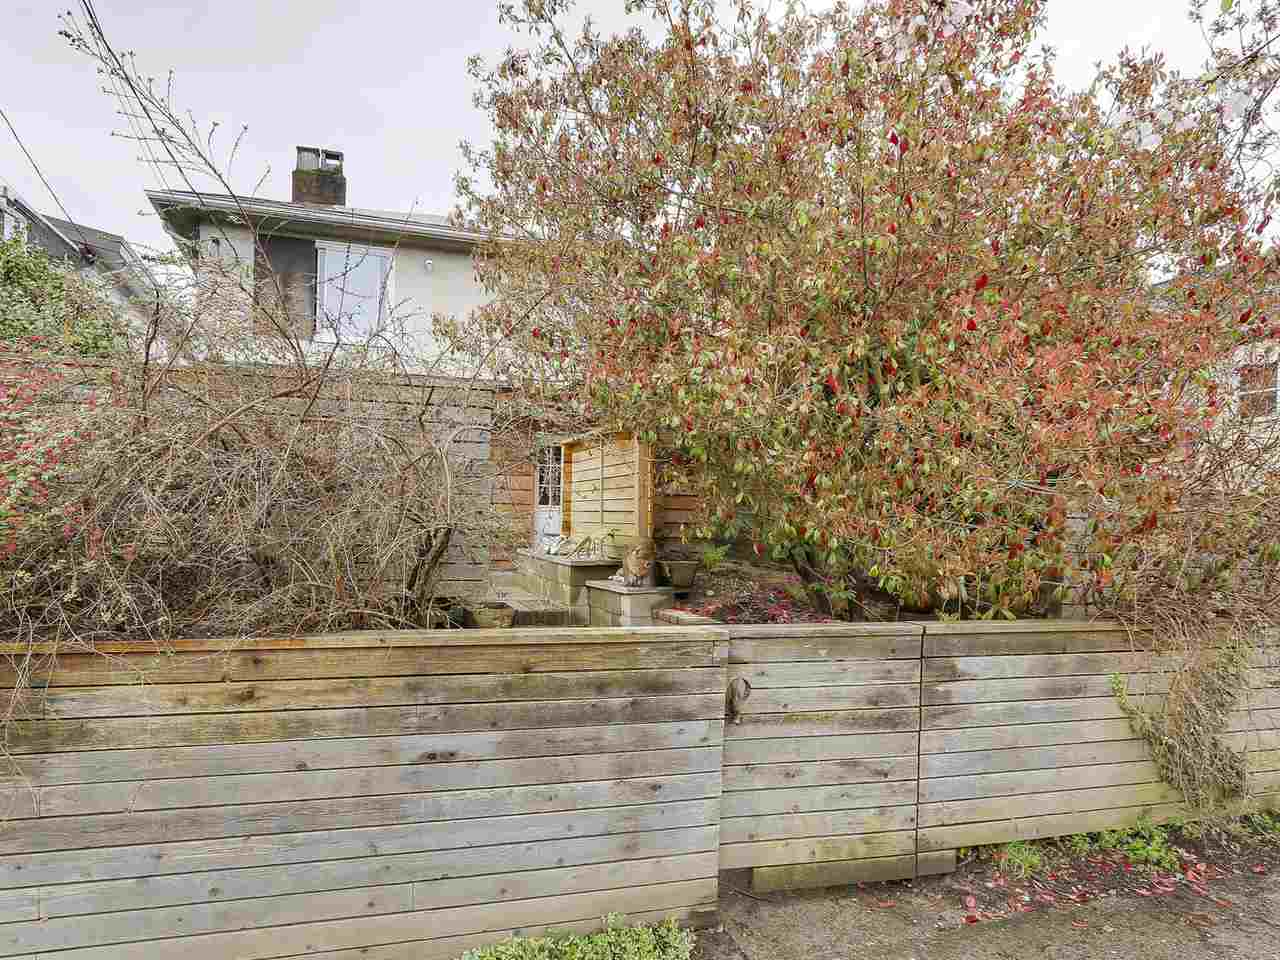 Main Photo: 462 E 28TH AVENUE in Vancouver: Fraser VE House for sale (Vancouver East)  : MLS® # R2158370